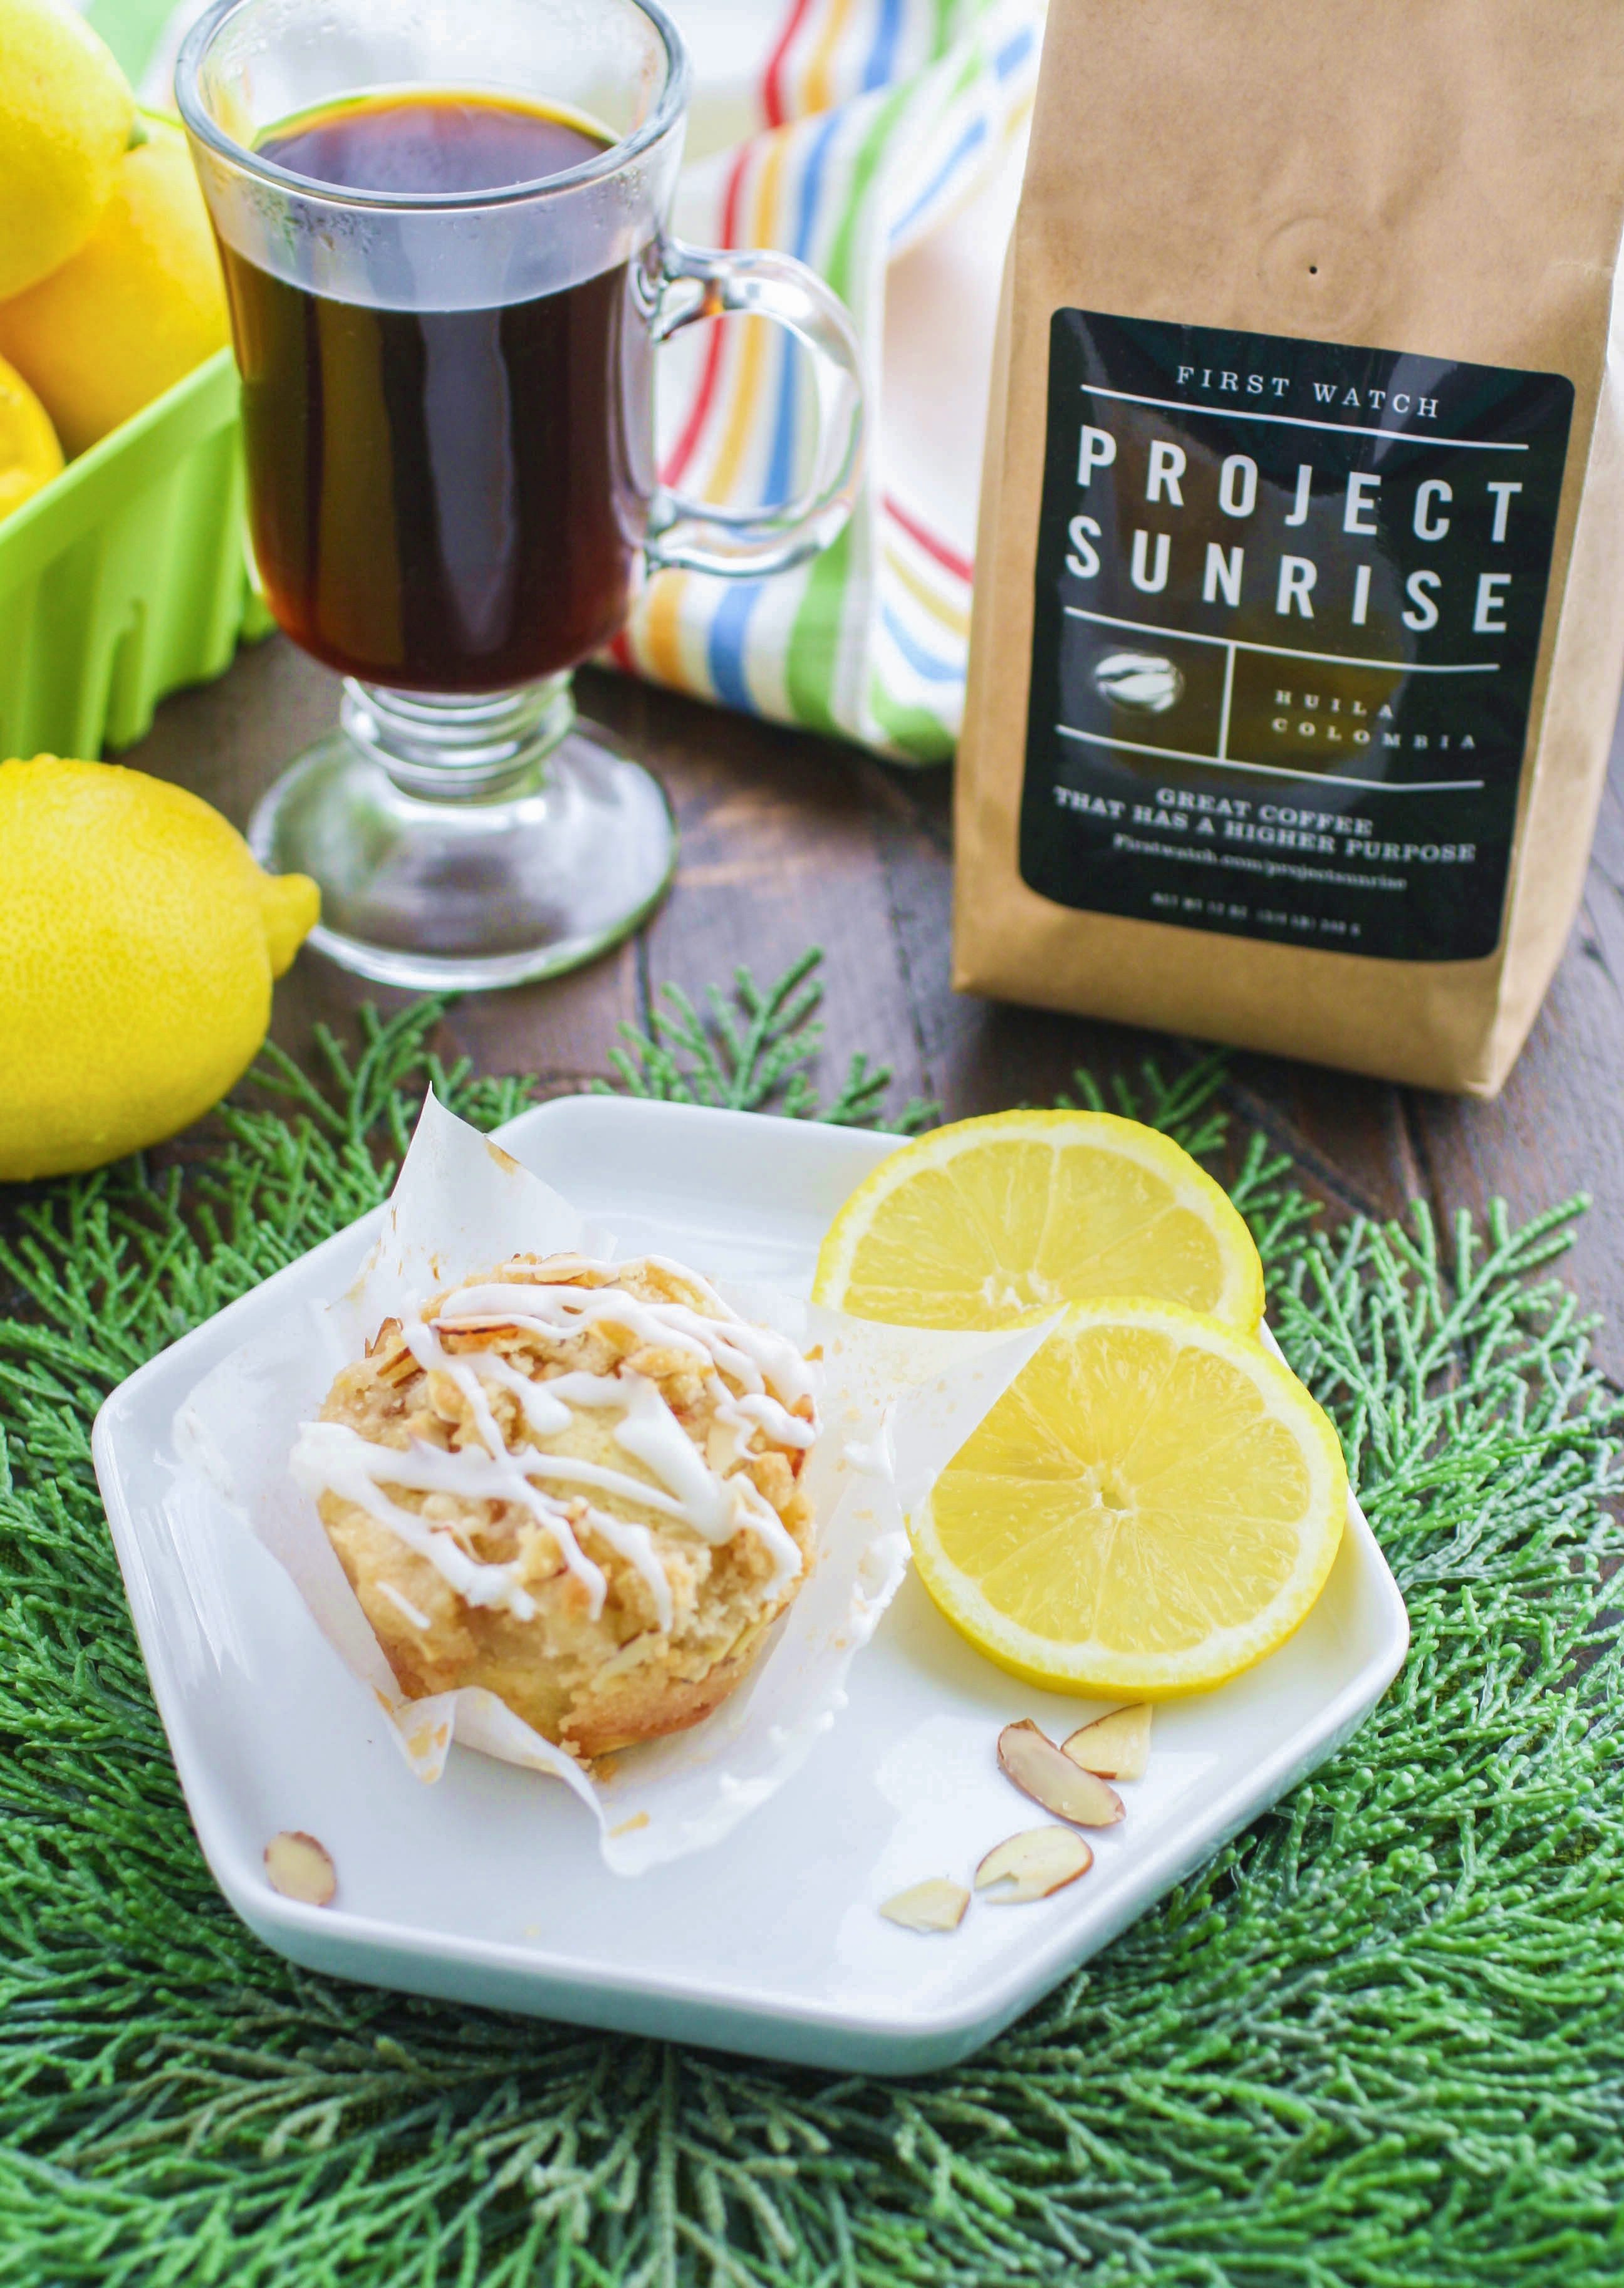 Lemon Muffins with Almond Streusel and Glaze are perfect to serve with your morning coffee. These bright lemon muffins are lovely for breakfast.